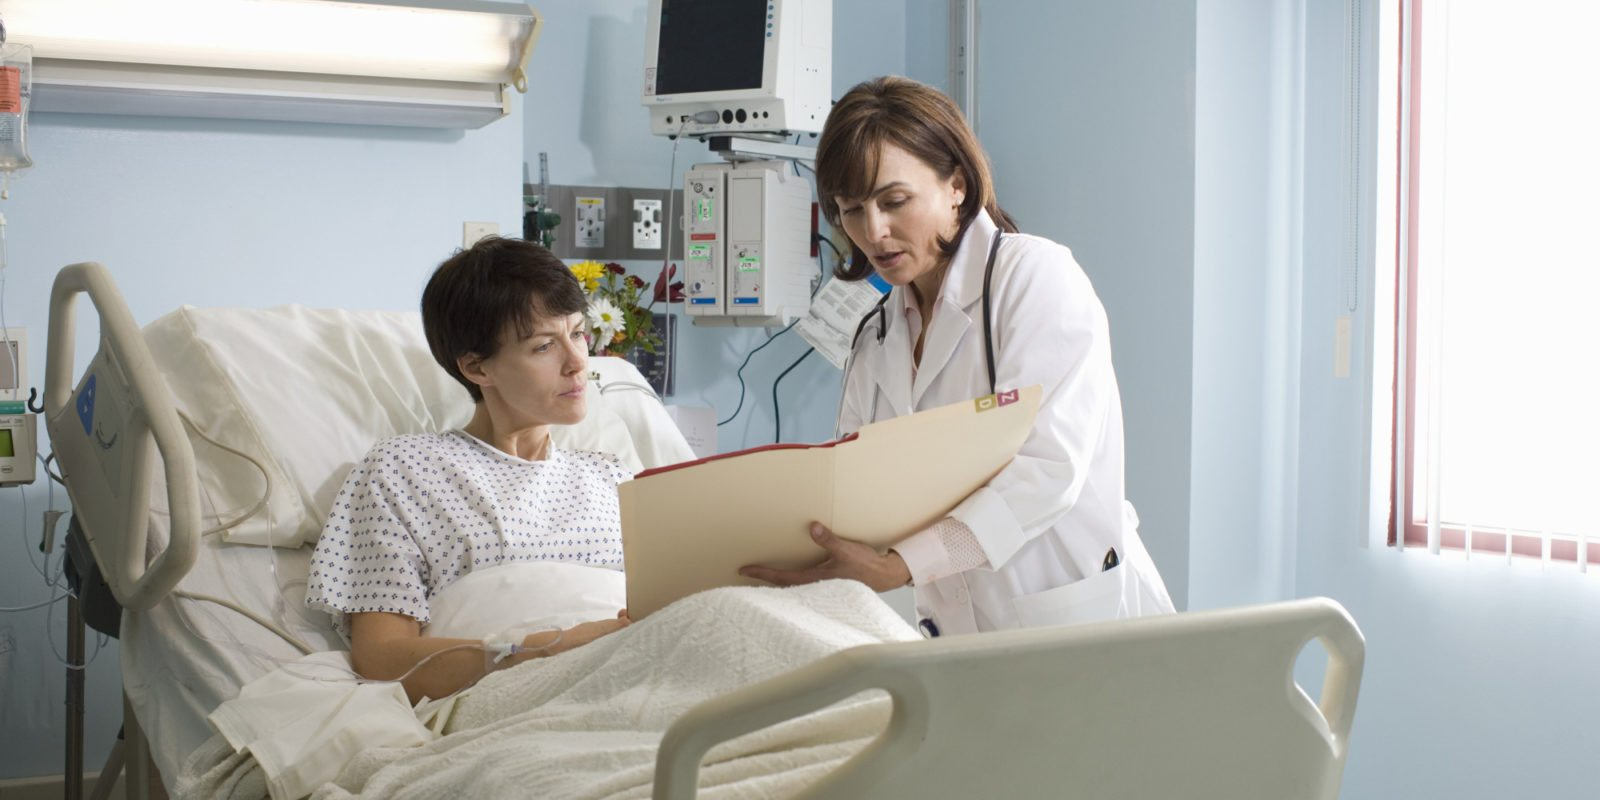 Female doctor showing medical chart to female patient lying in hospital bed